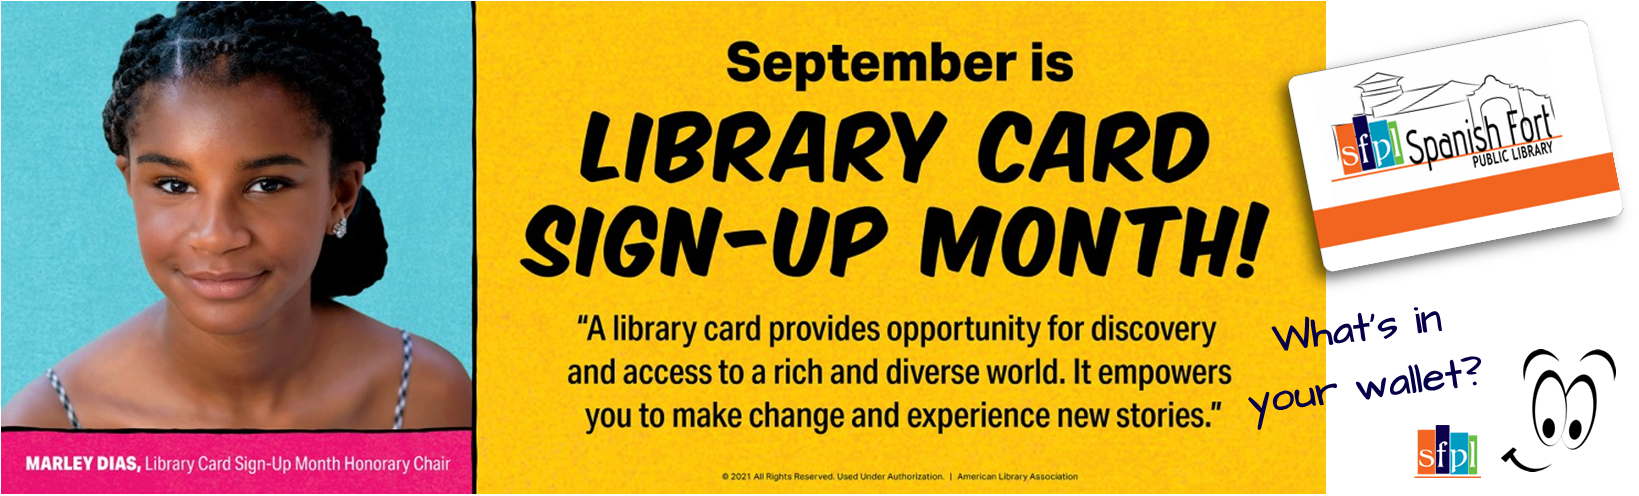 Marley Dias, 16 year old author and host of the NETFLIX series BOOKMARKS is the American Library Association's 2021 National Library Card Sign Up Month official spokesperson